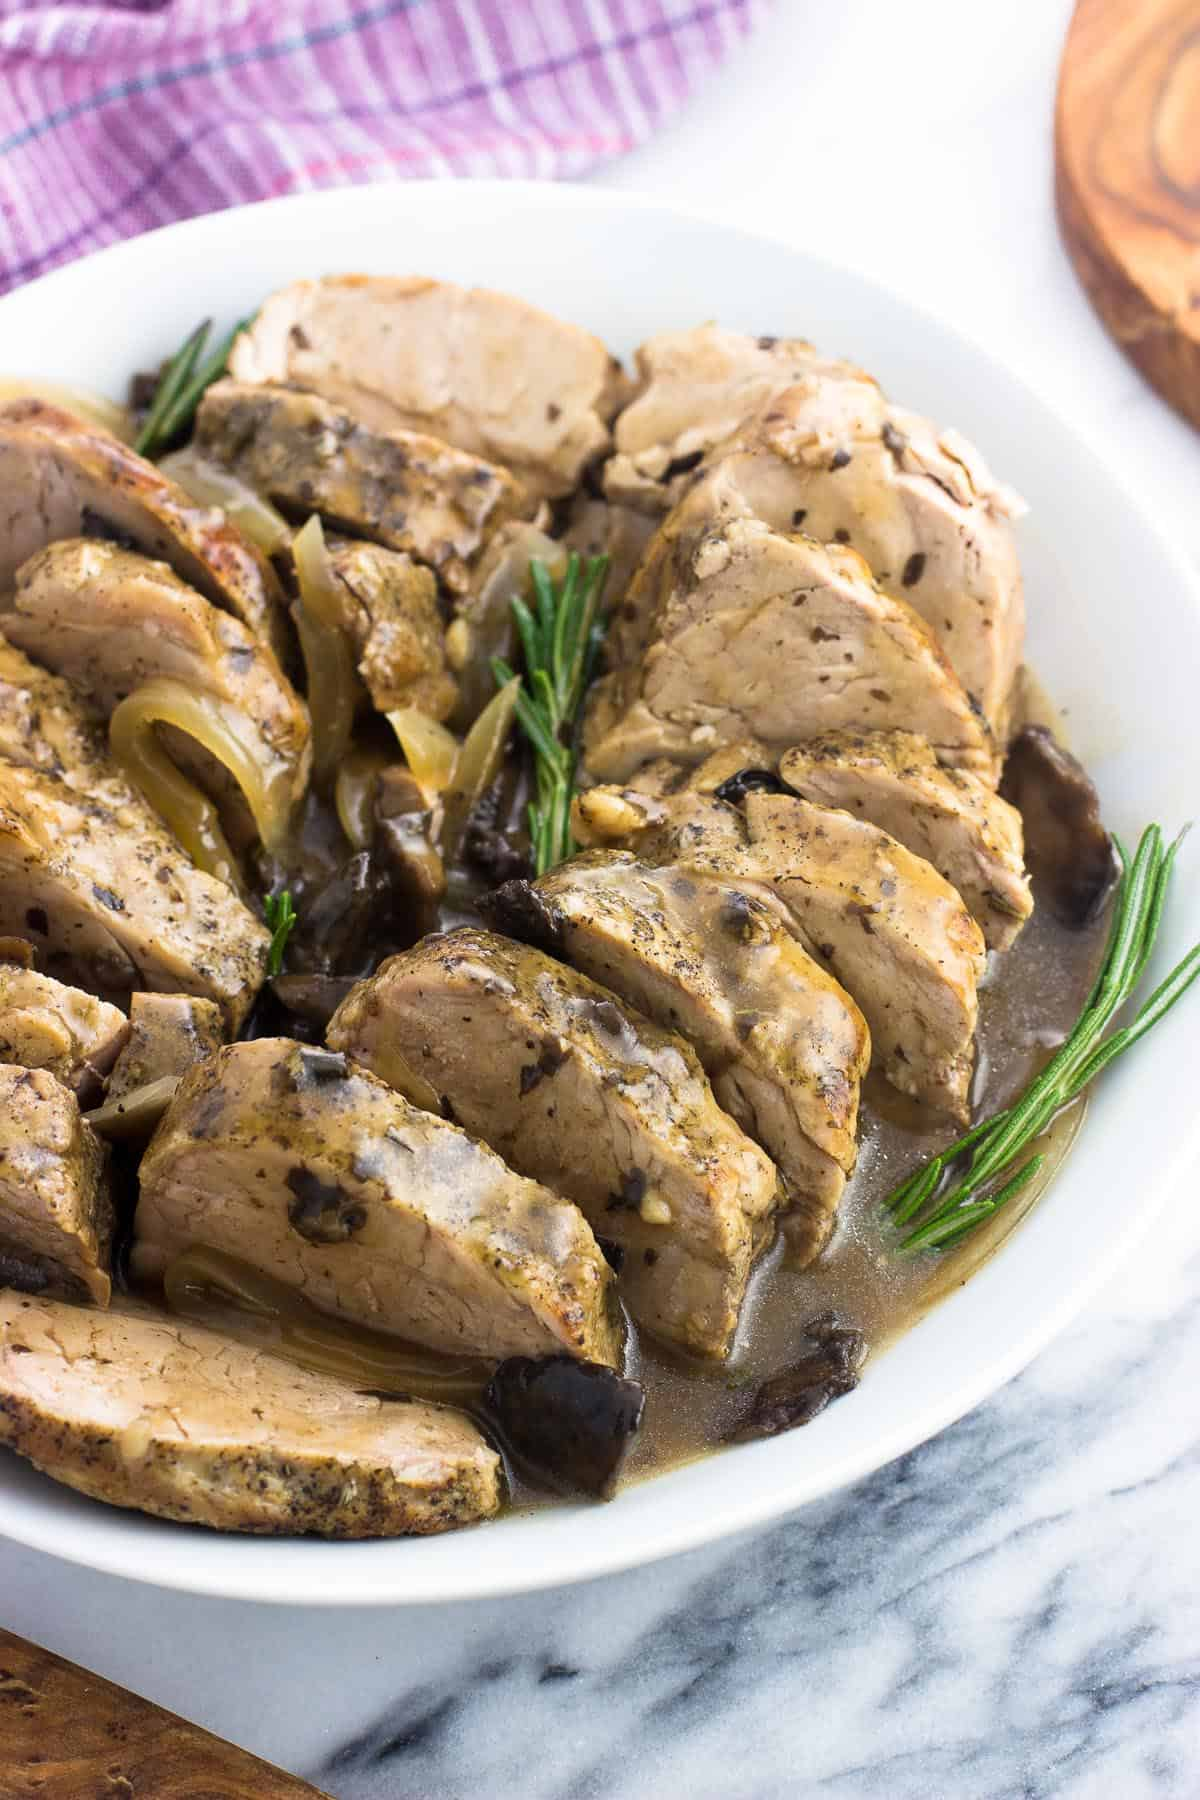 Sliced pork tenderloin in a serving dish garnished with sauce and fresh rosemary sprigs